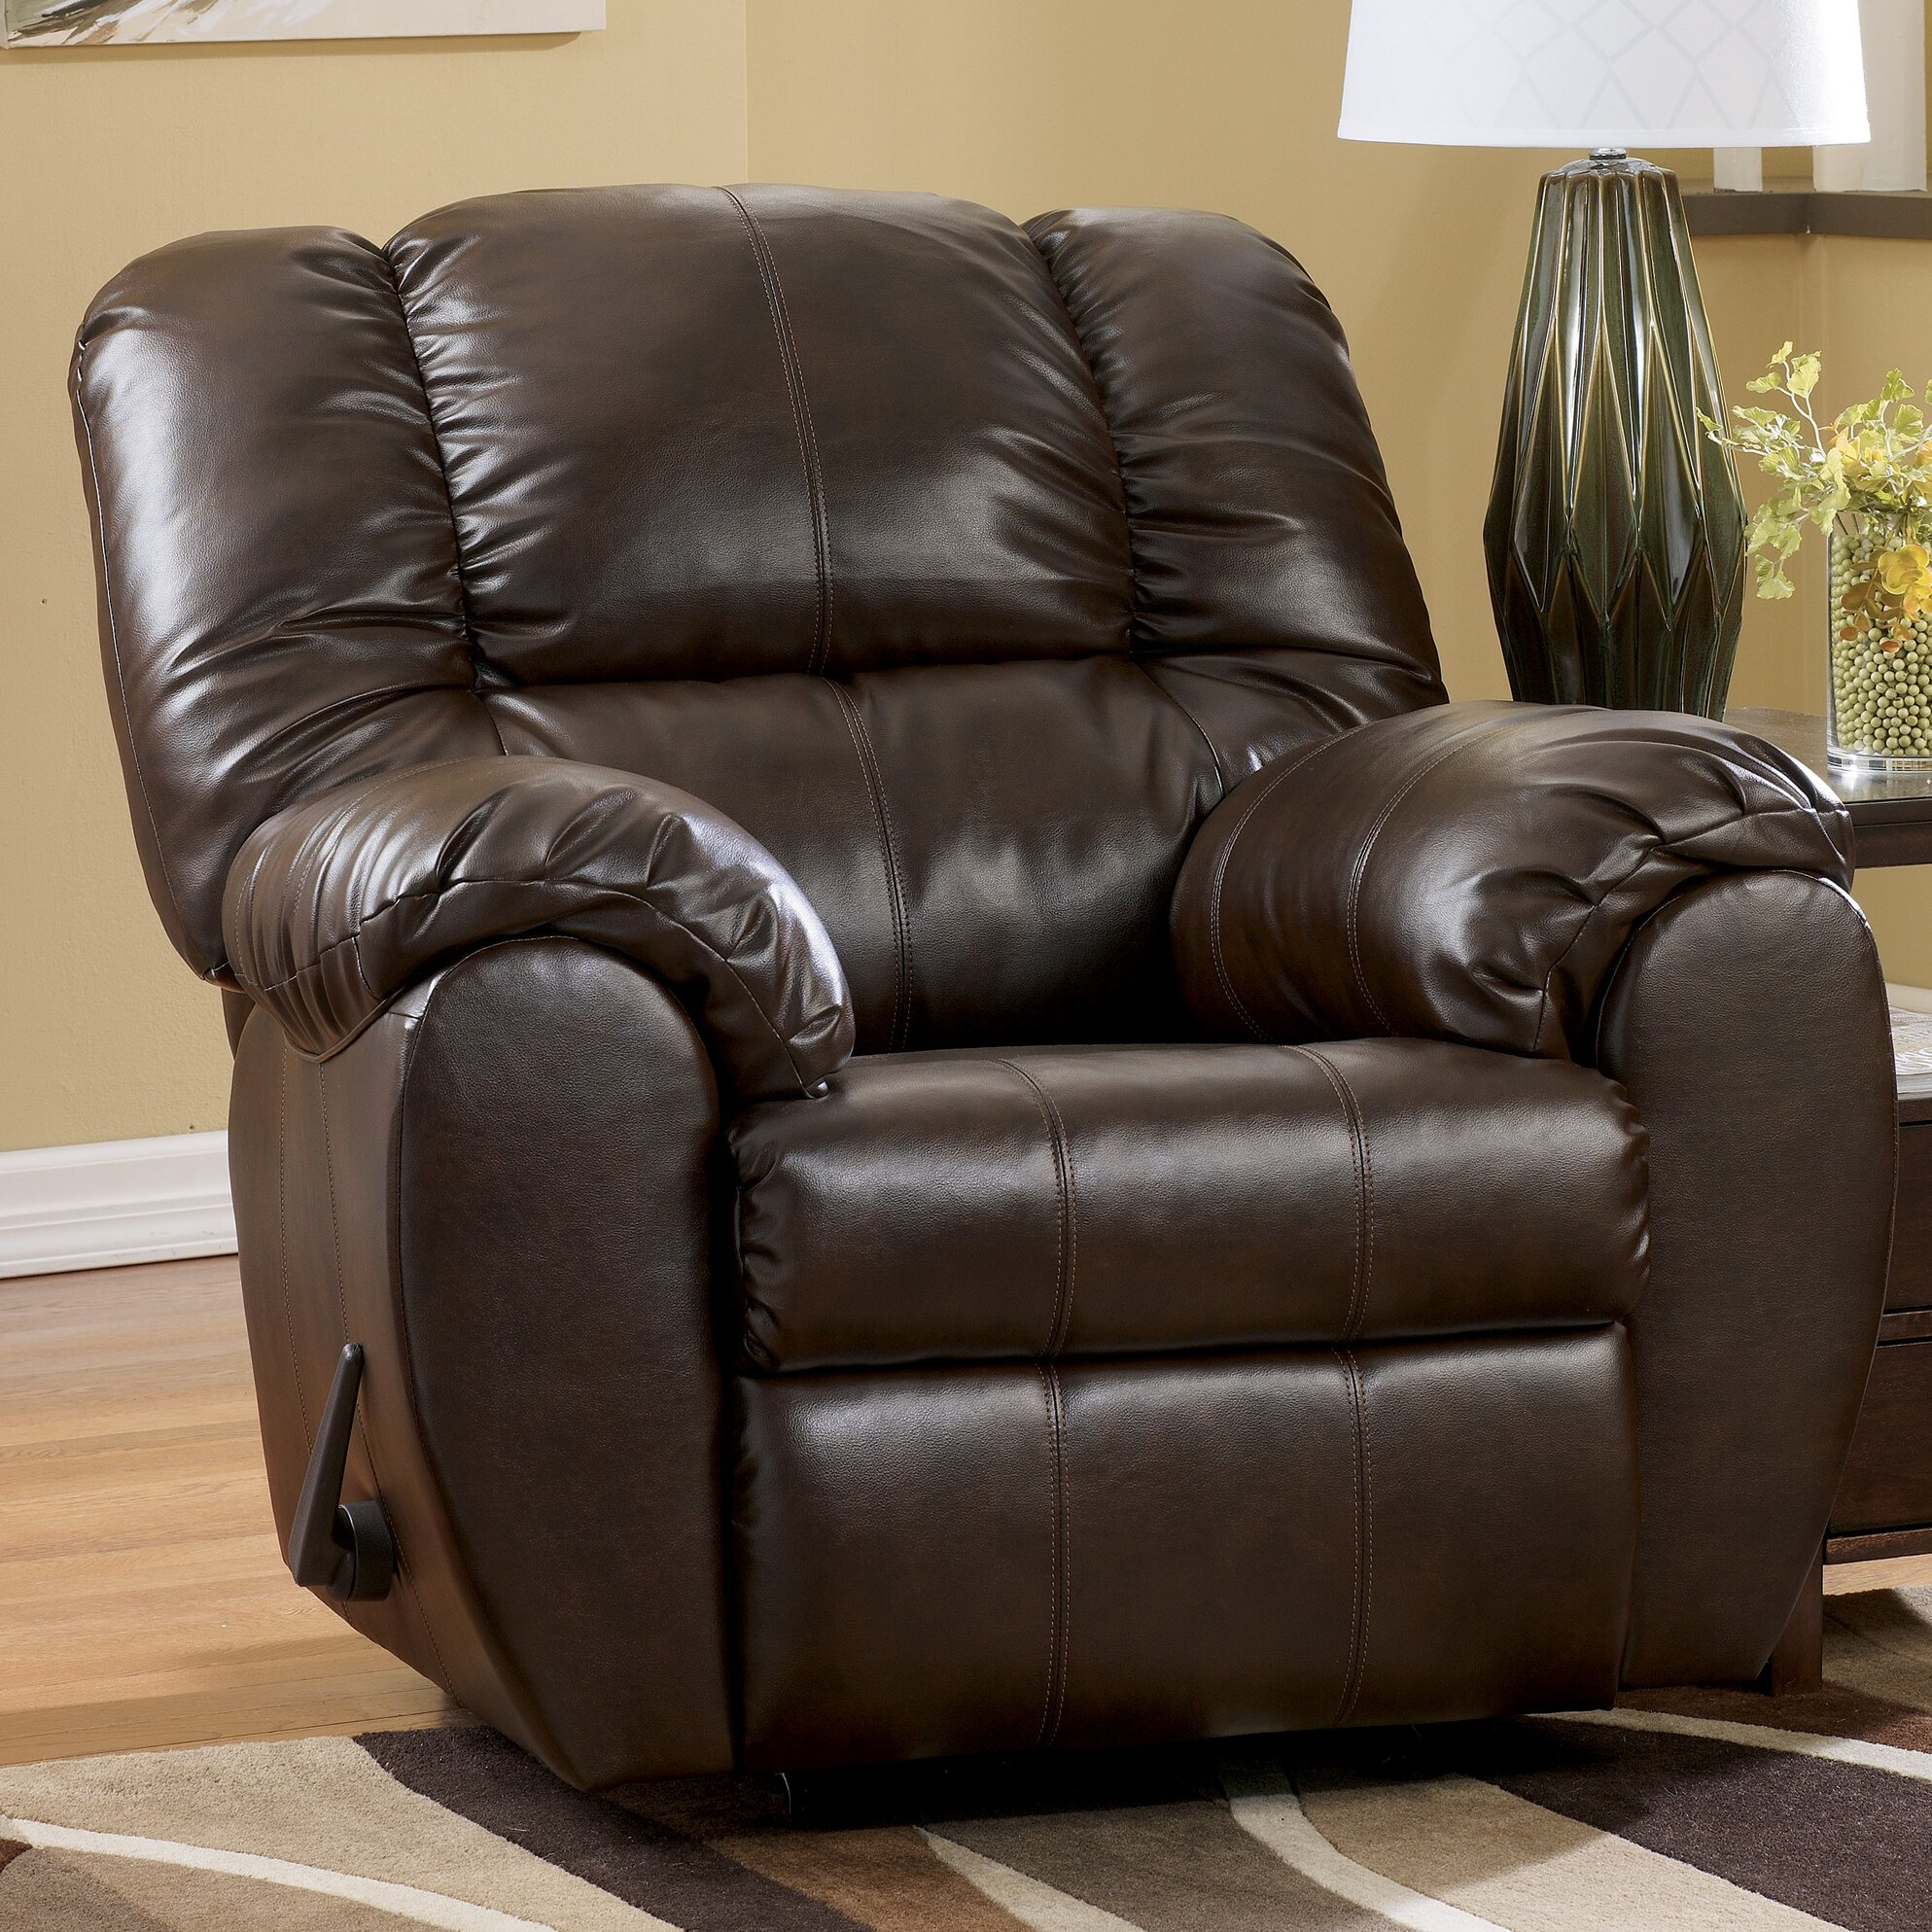 Signature design by ashley jack chaise recliner reviews for Ashley chaise lounge recliner